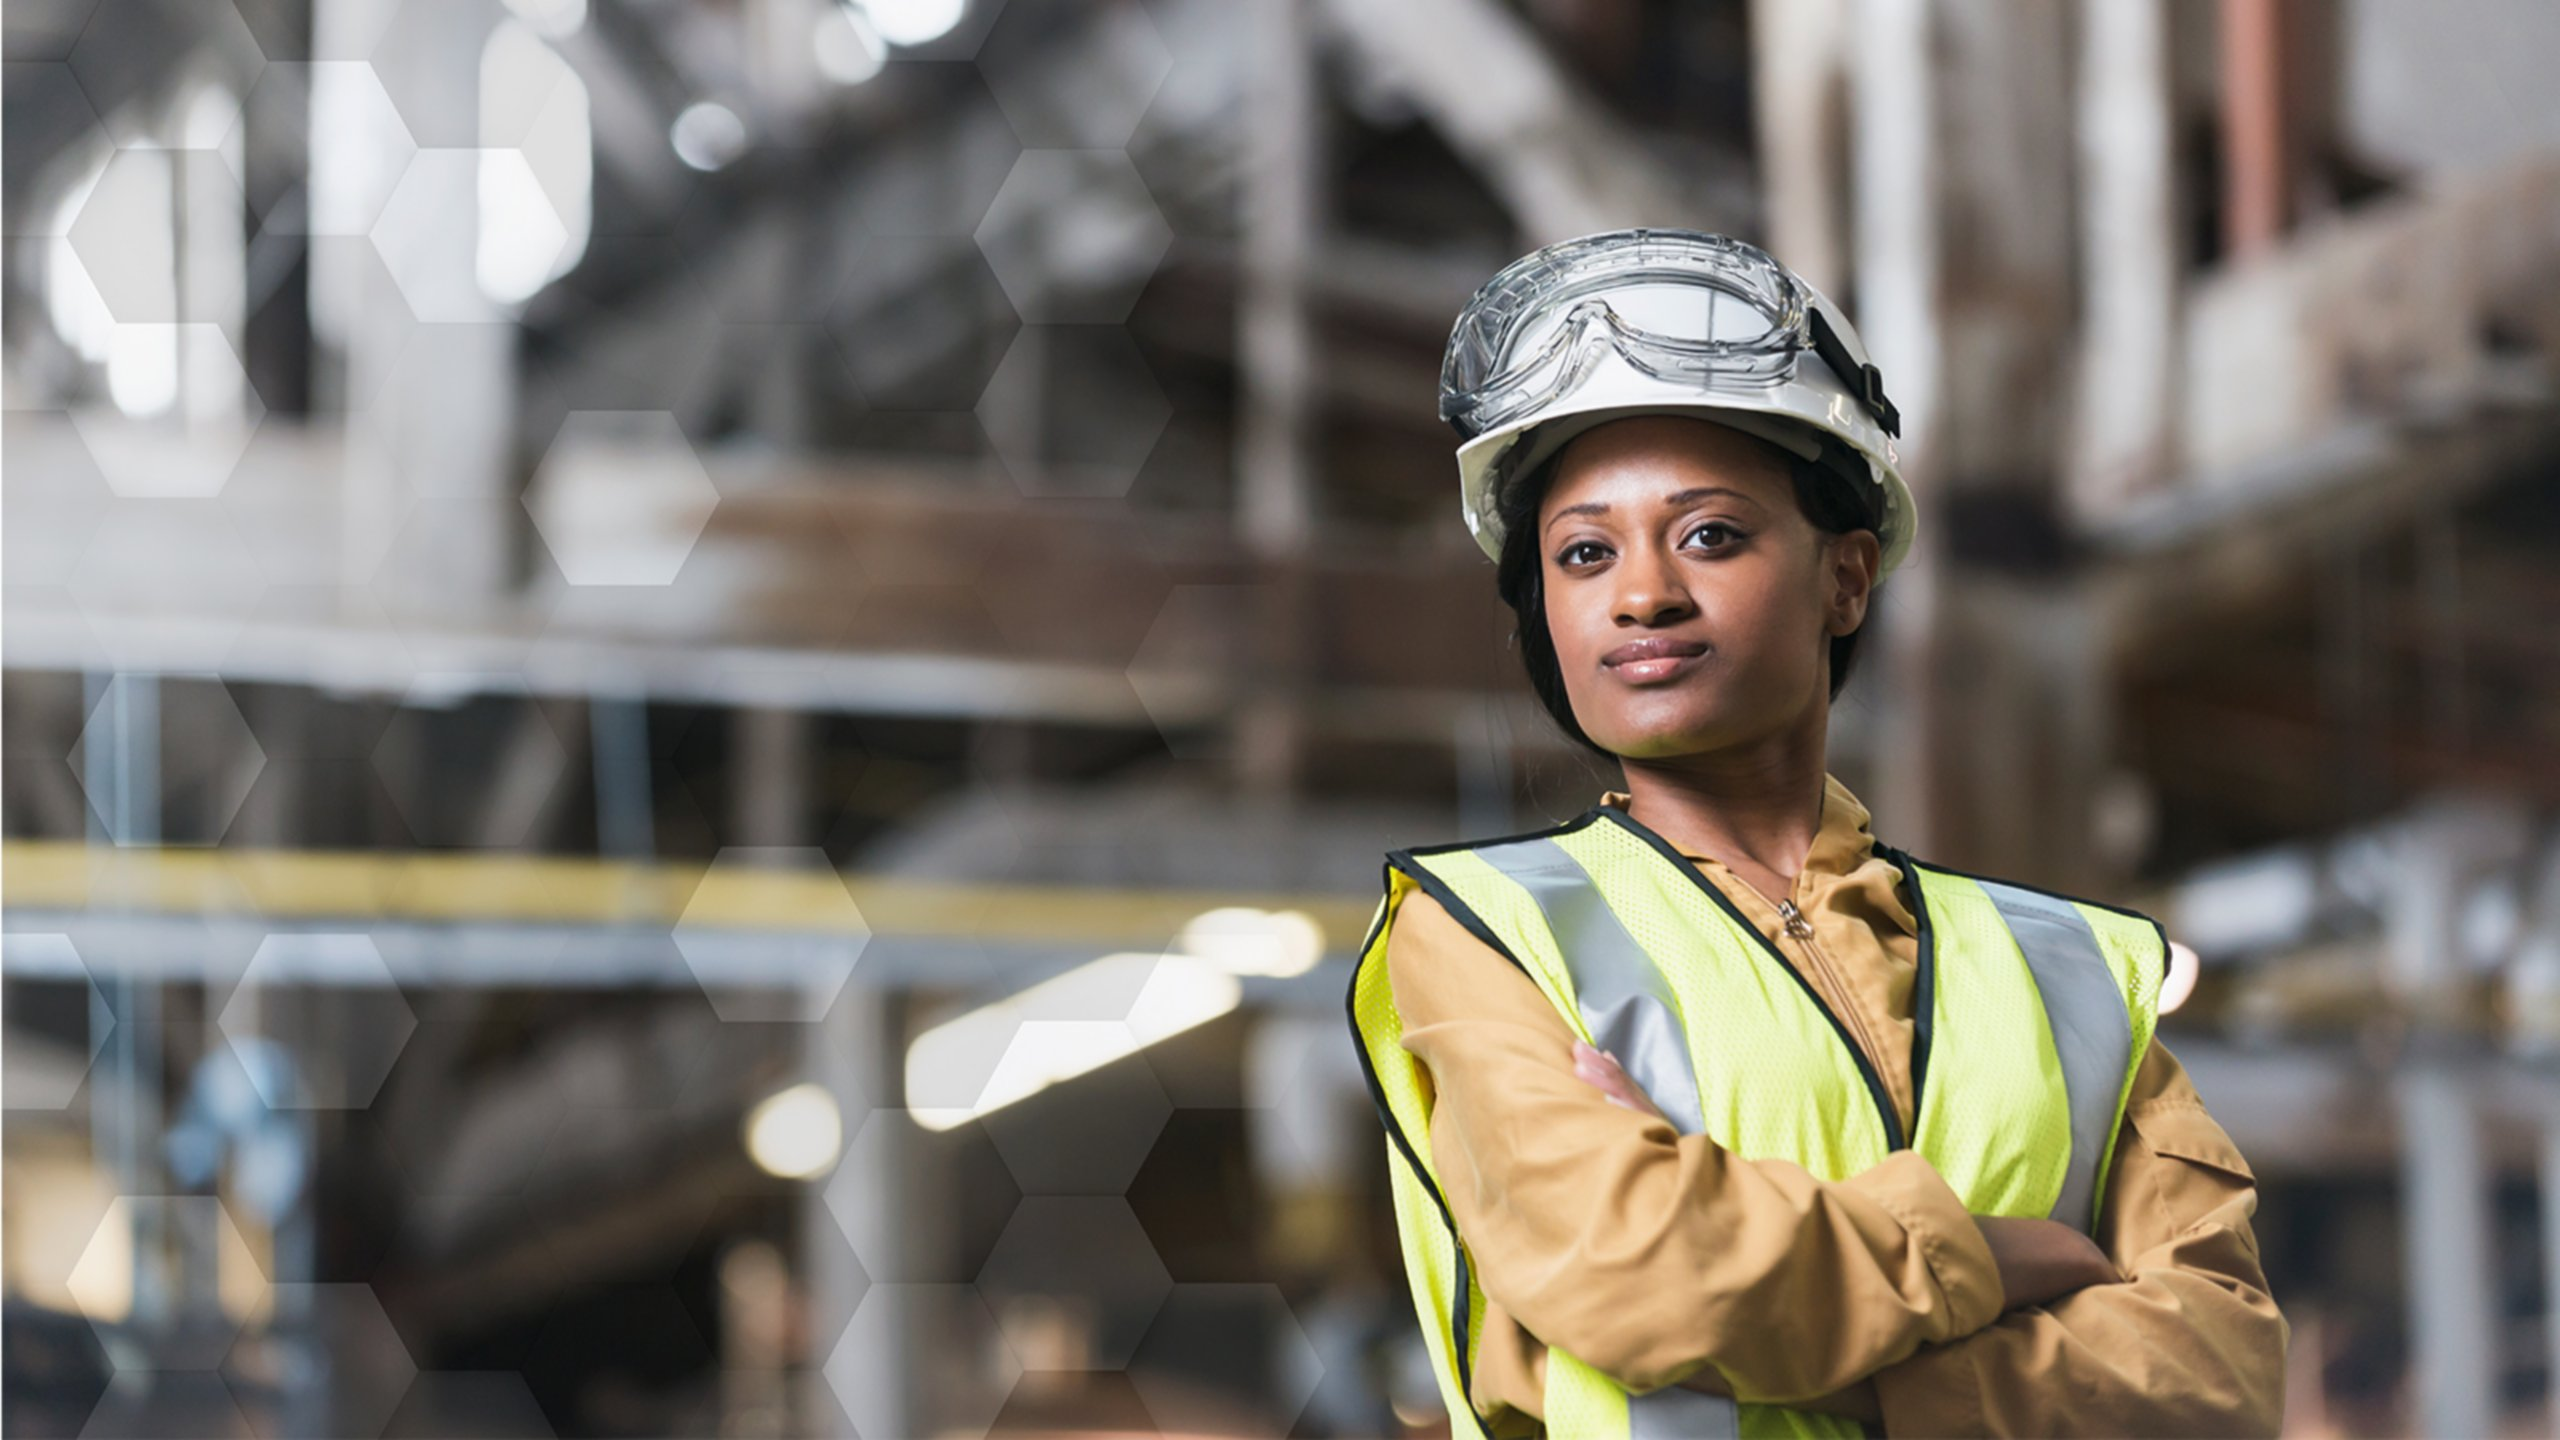 Women wearing hardhat with safety glasses and safety vest in manufacturing facility with lockout/tagout procedures